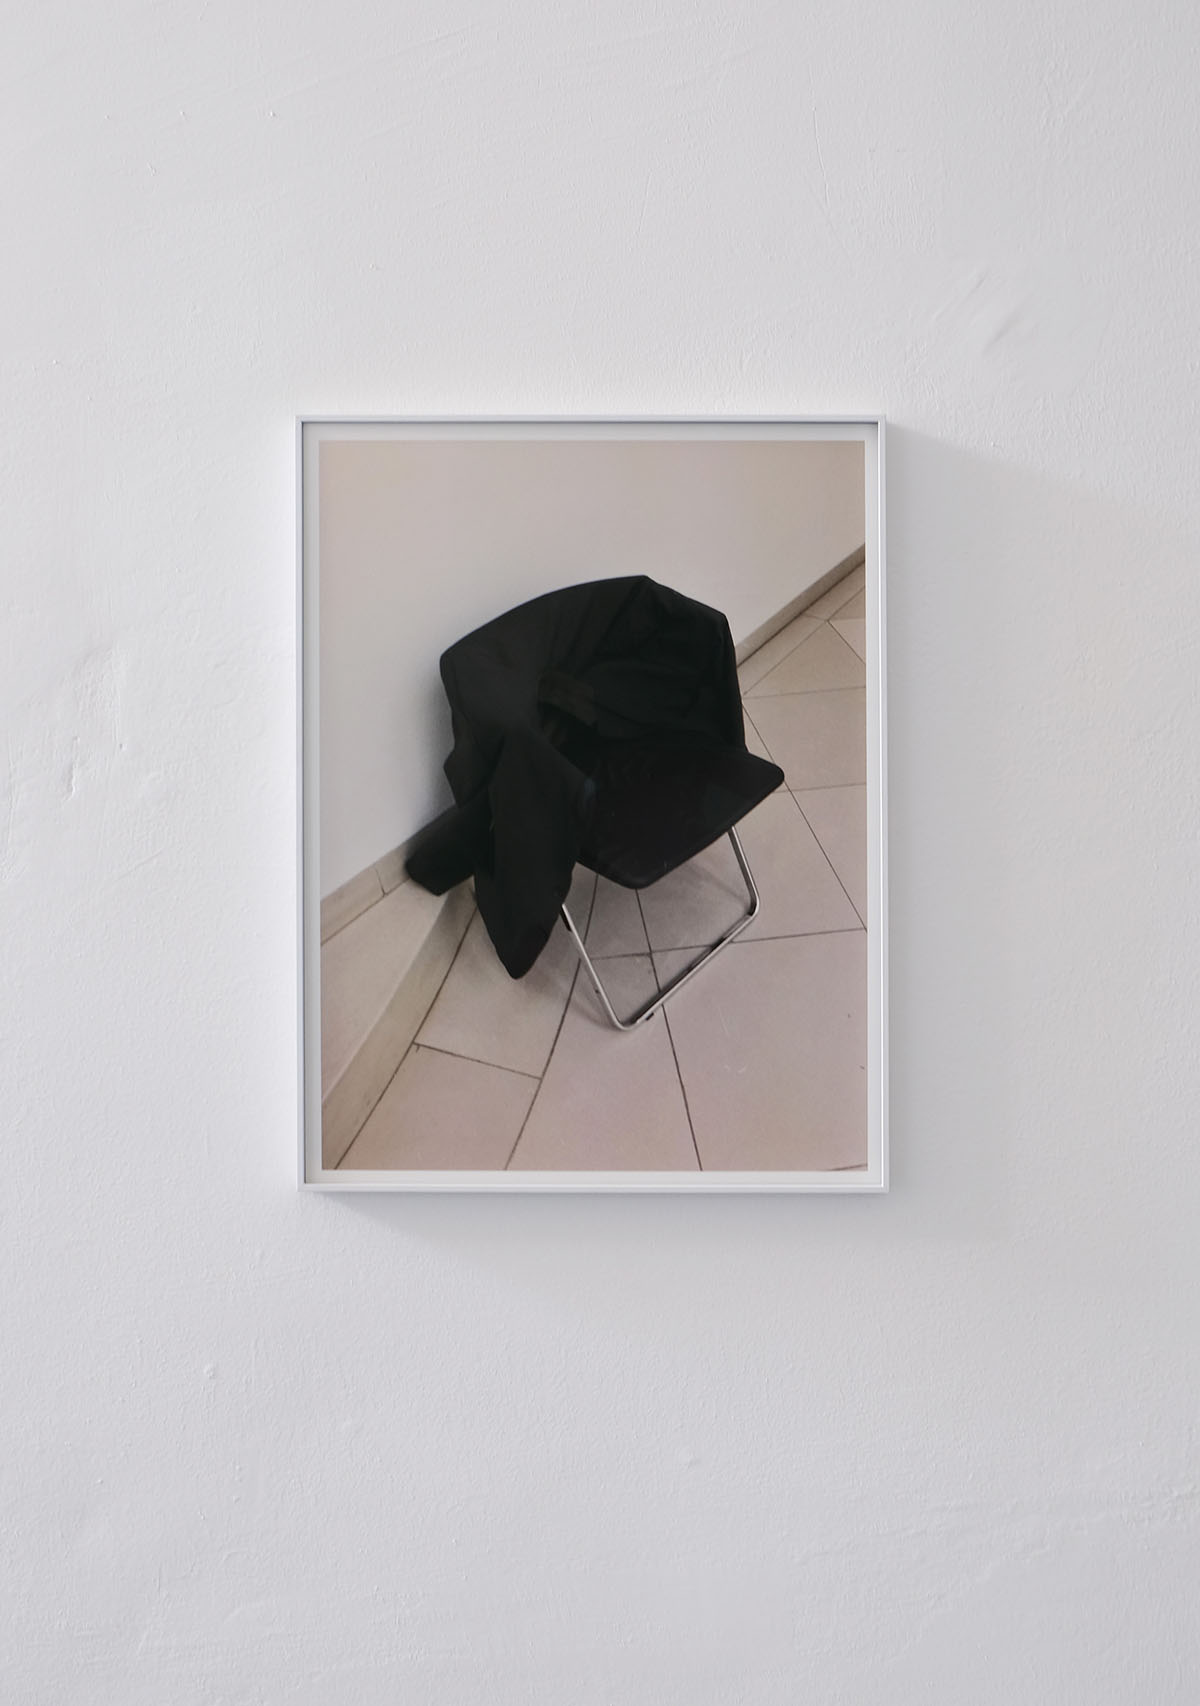 Elisabeth Molin, as if you could just kill time (2019), archival pigment print, alu frame, 56 x 37 cm